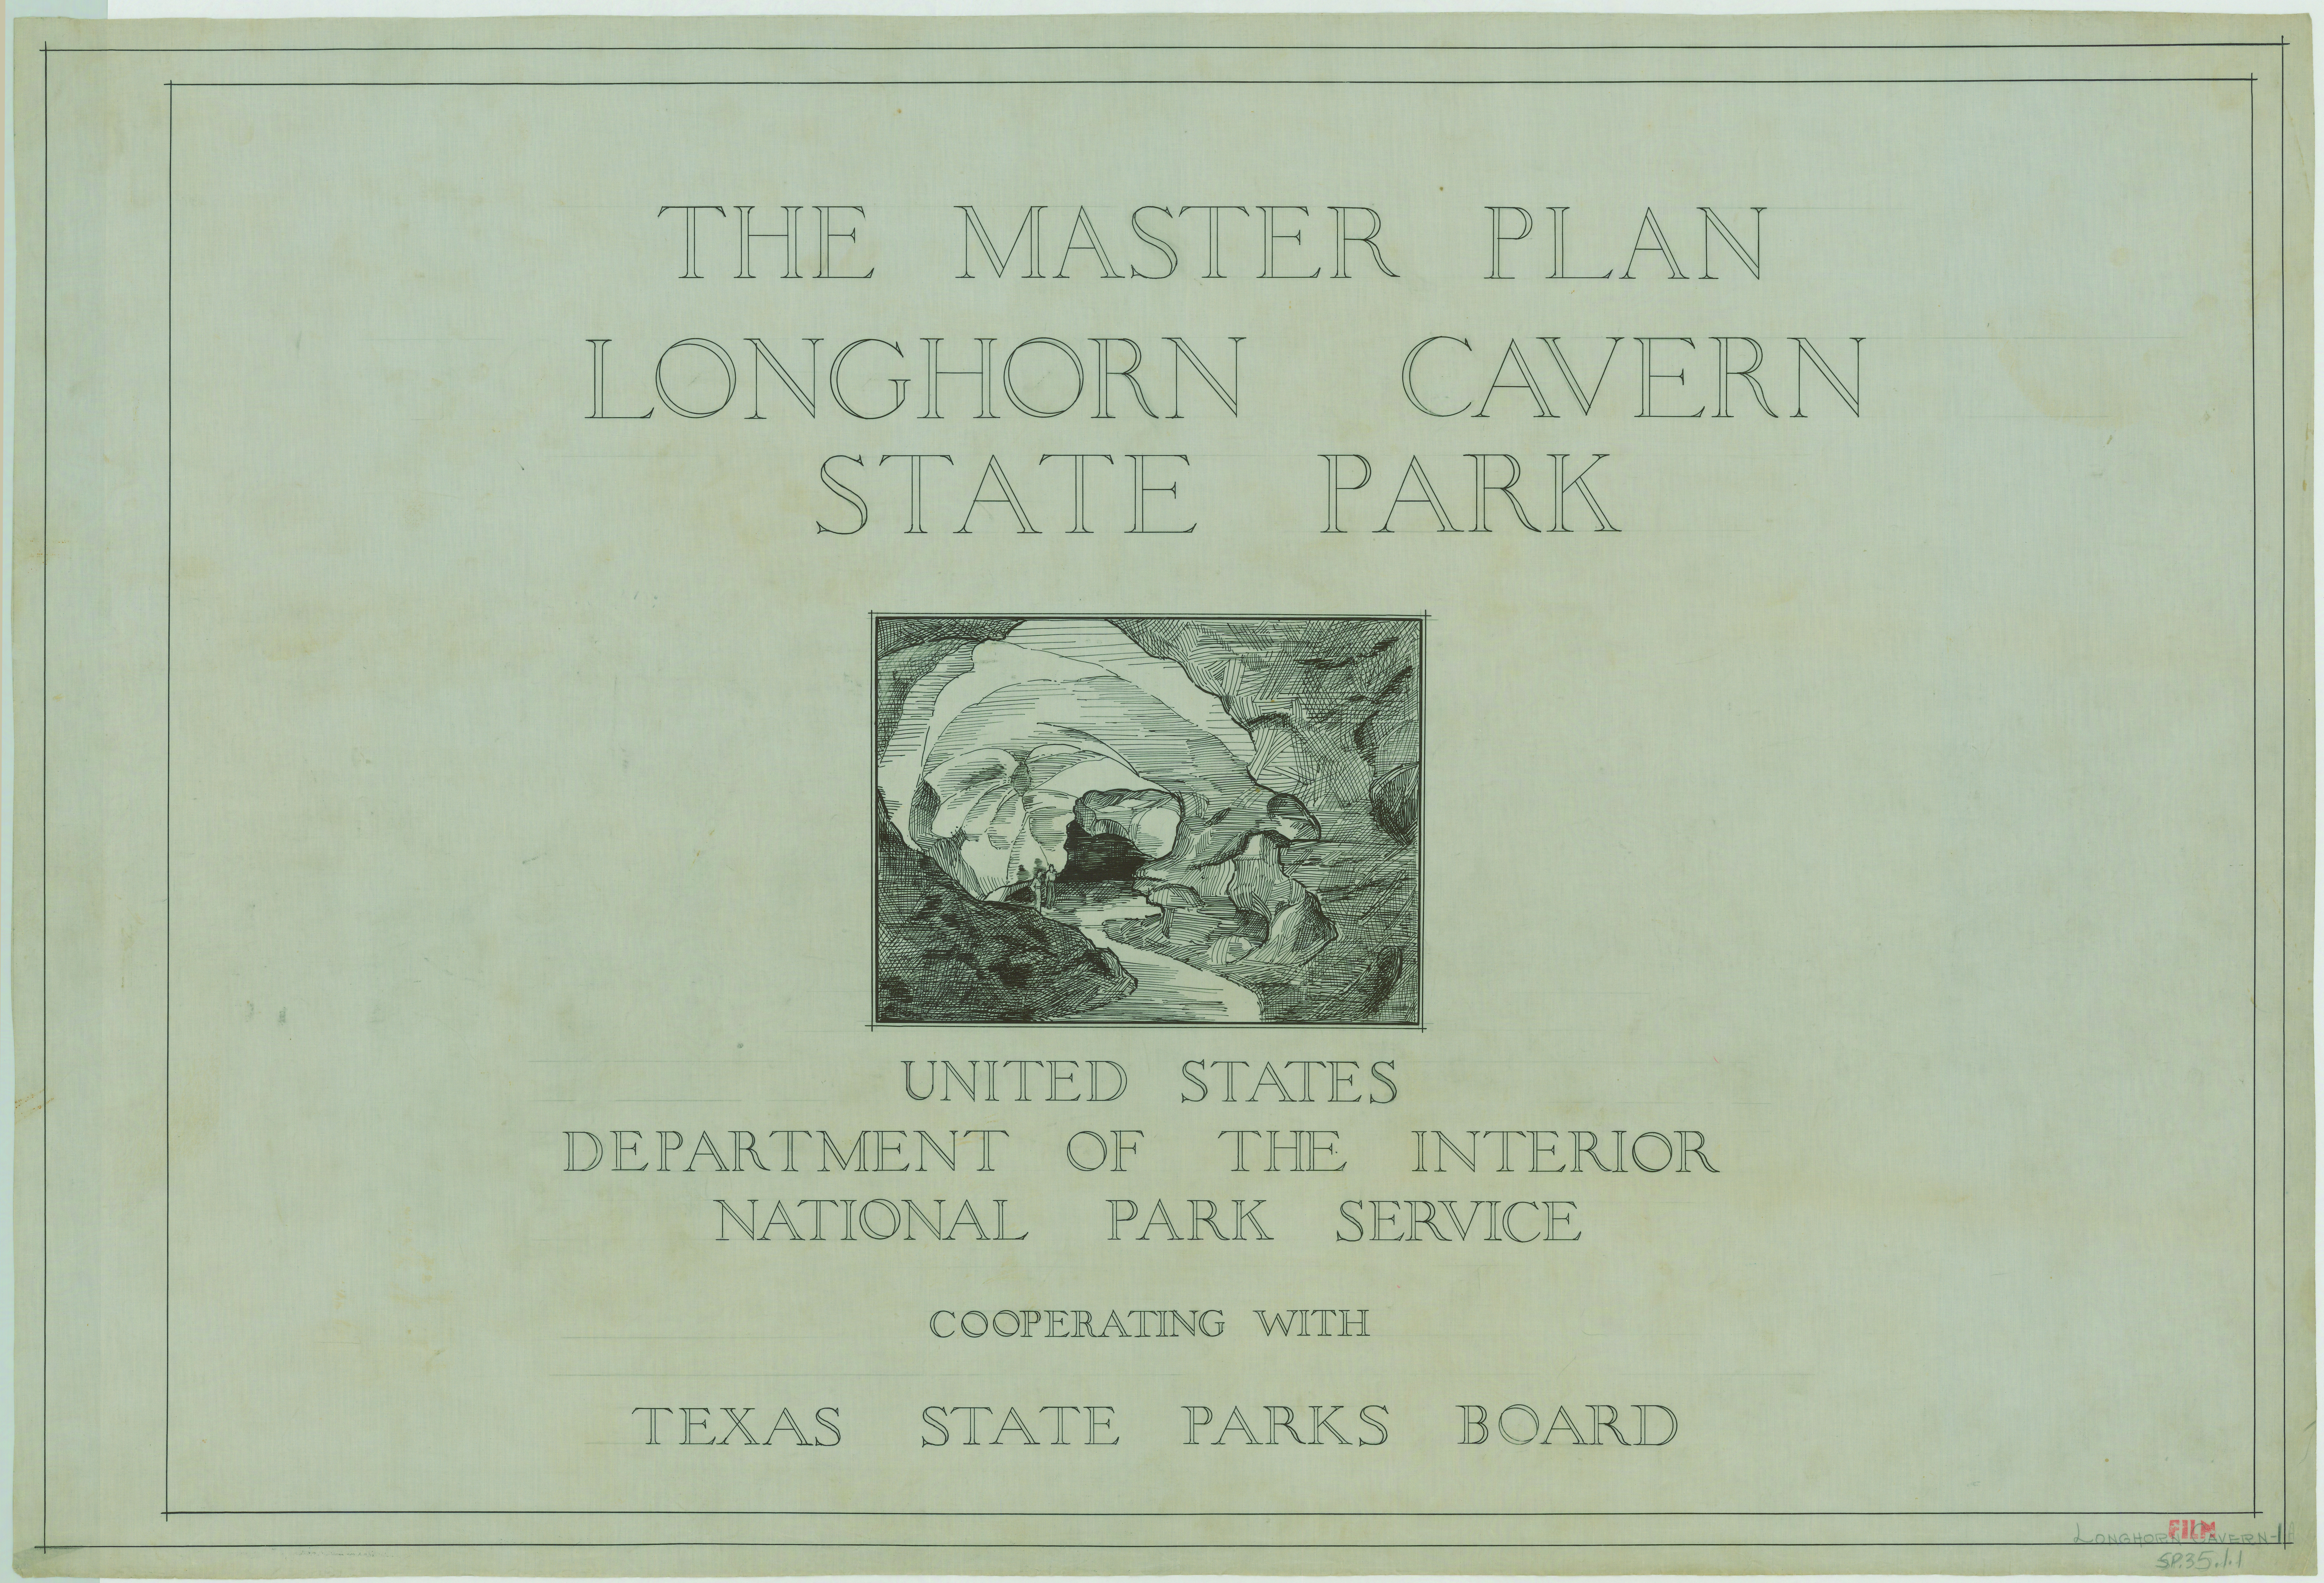 Longhorn Cavern State Park - Master Plan (Title Page) - SP35_001A